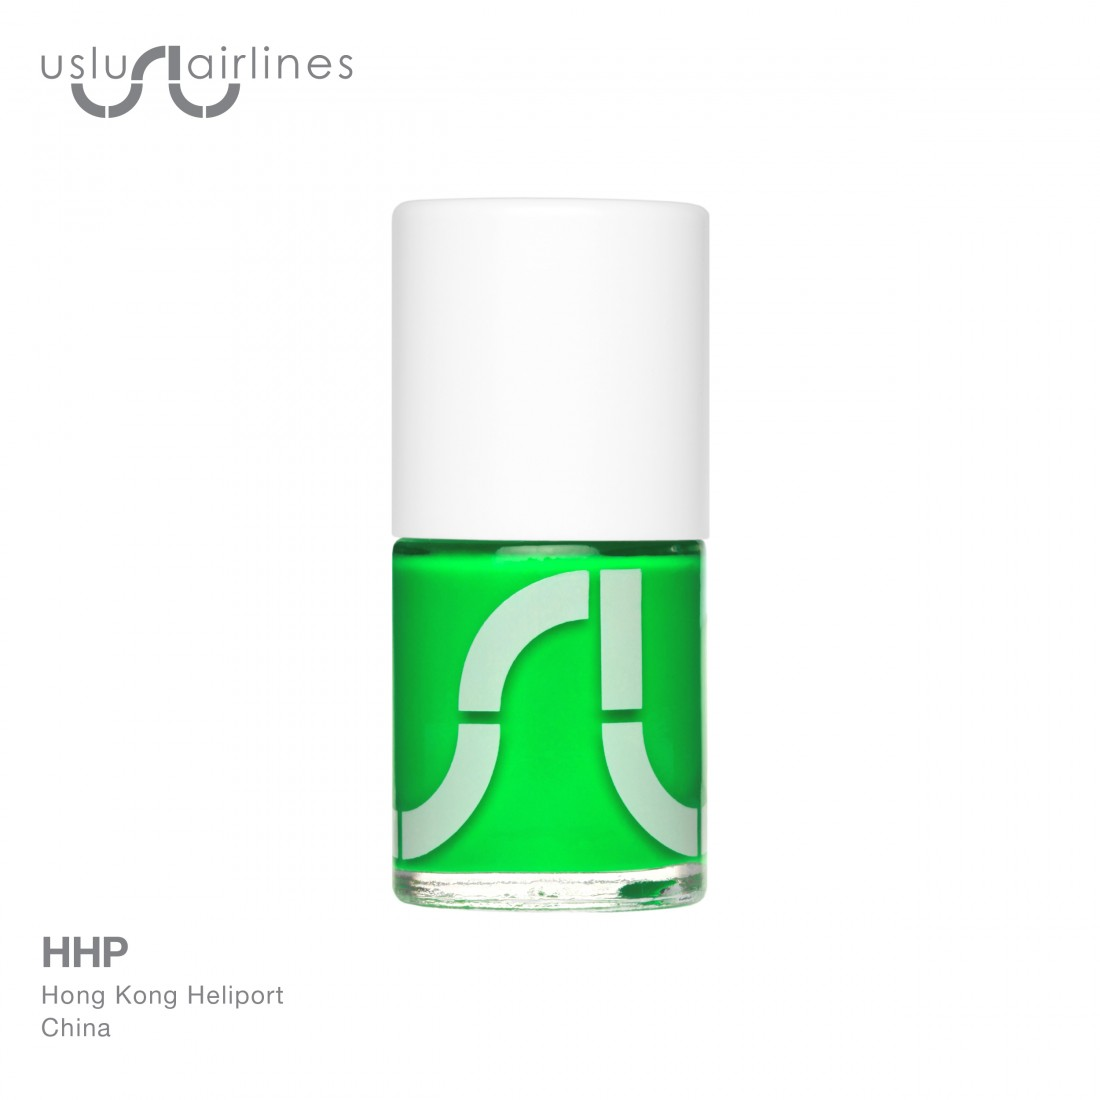 uslu_nailpolish_HHP